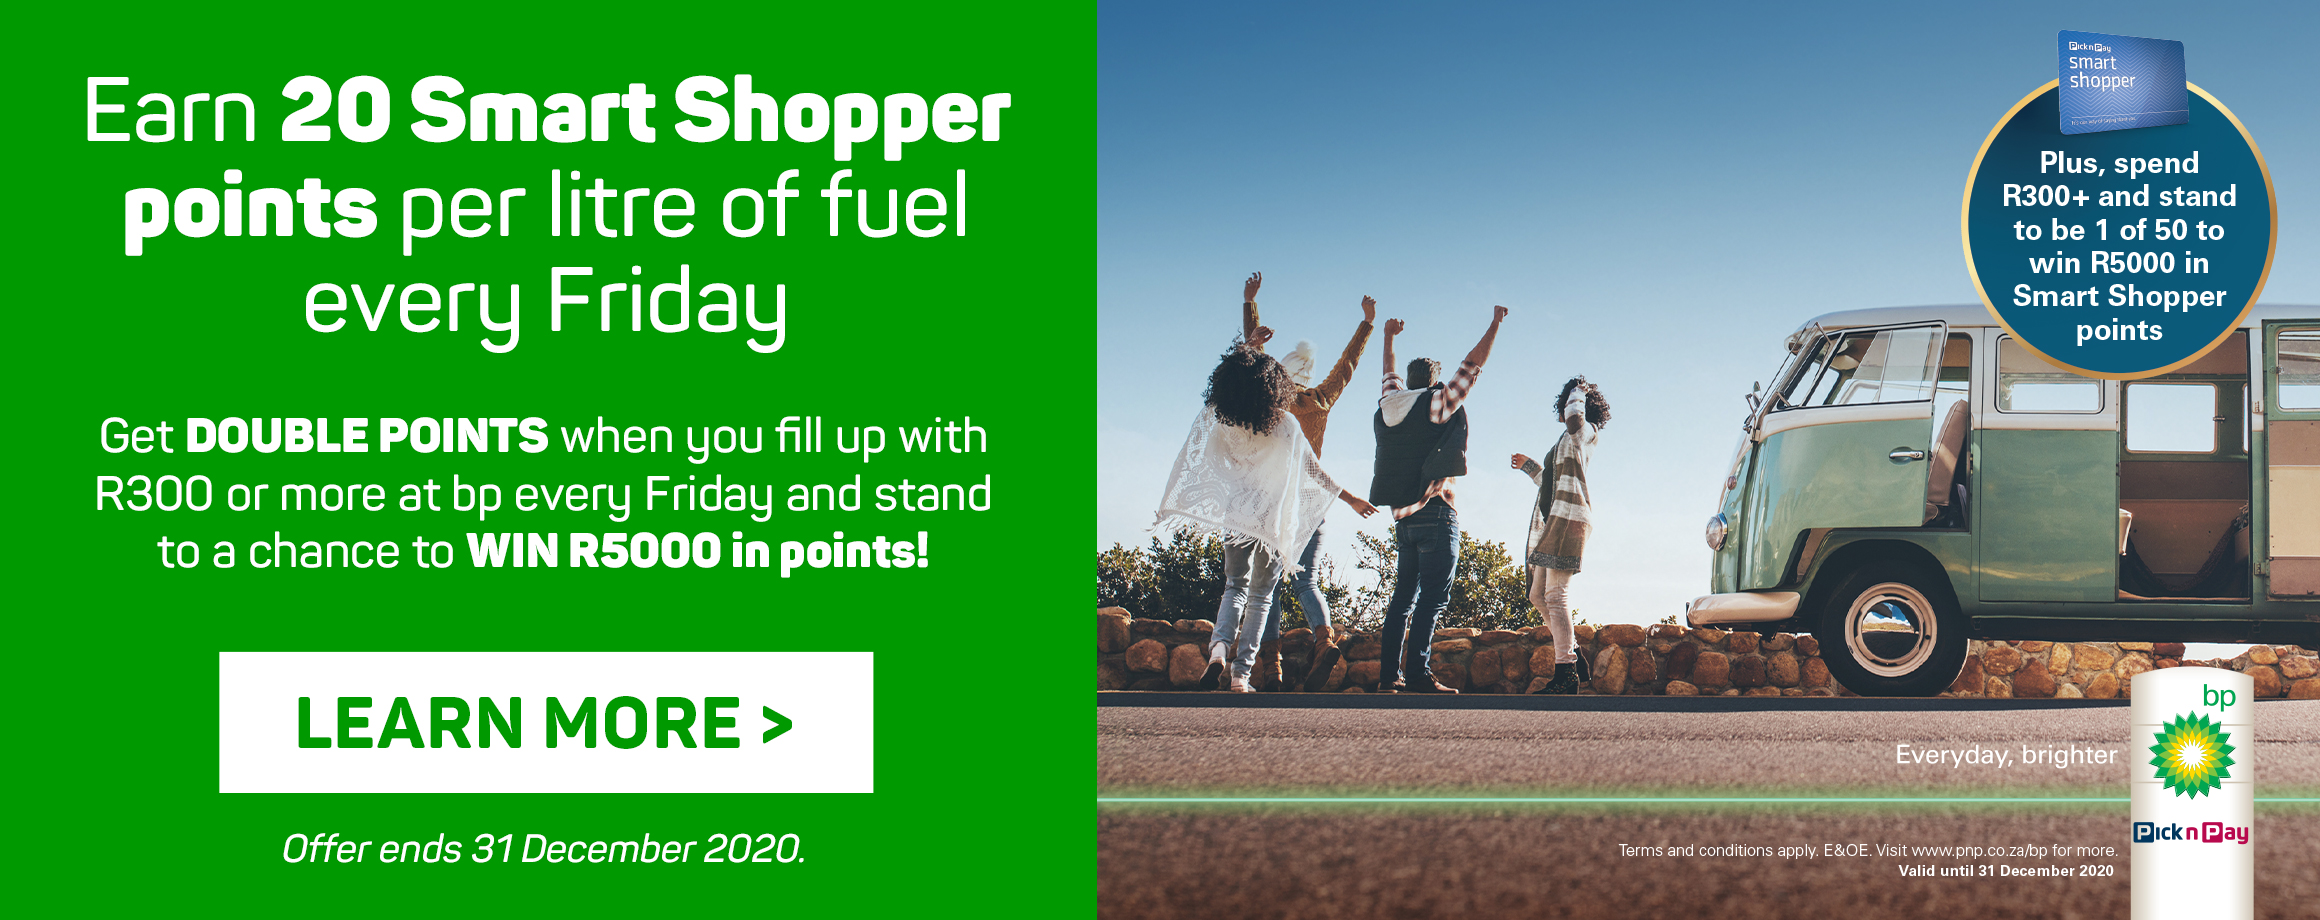 Earn 20 Smart Shopper points per litre of fuel every Friday. Learn more